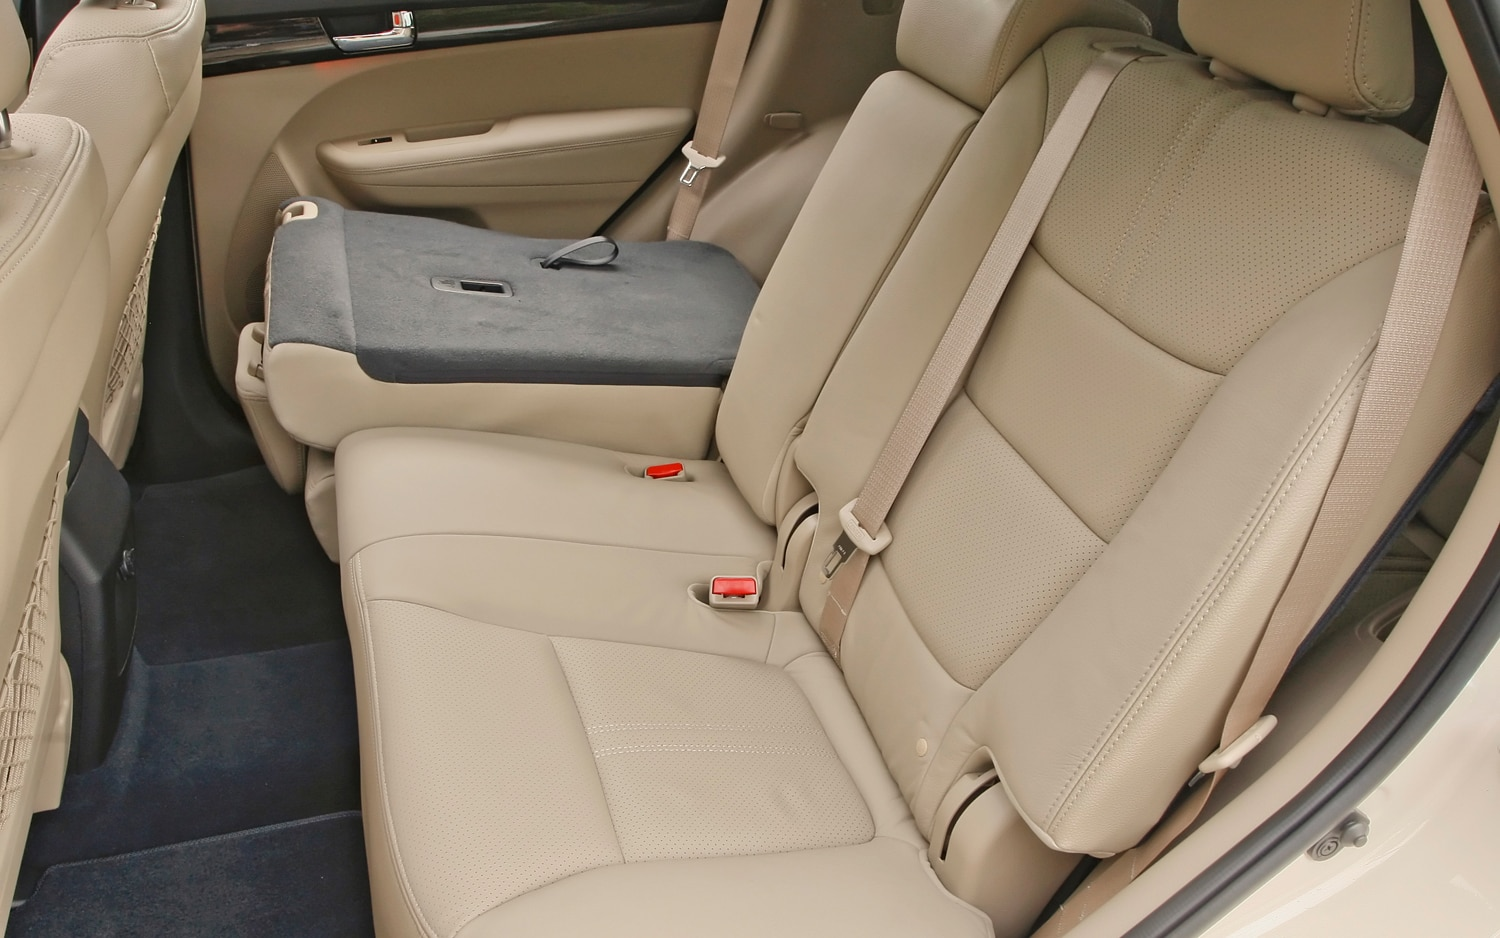 2012 Kia Sorento Rear Seat Folded